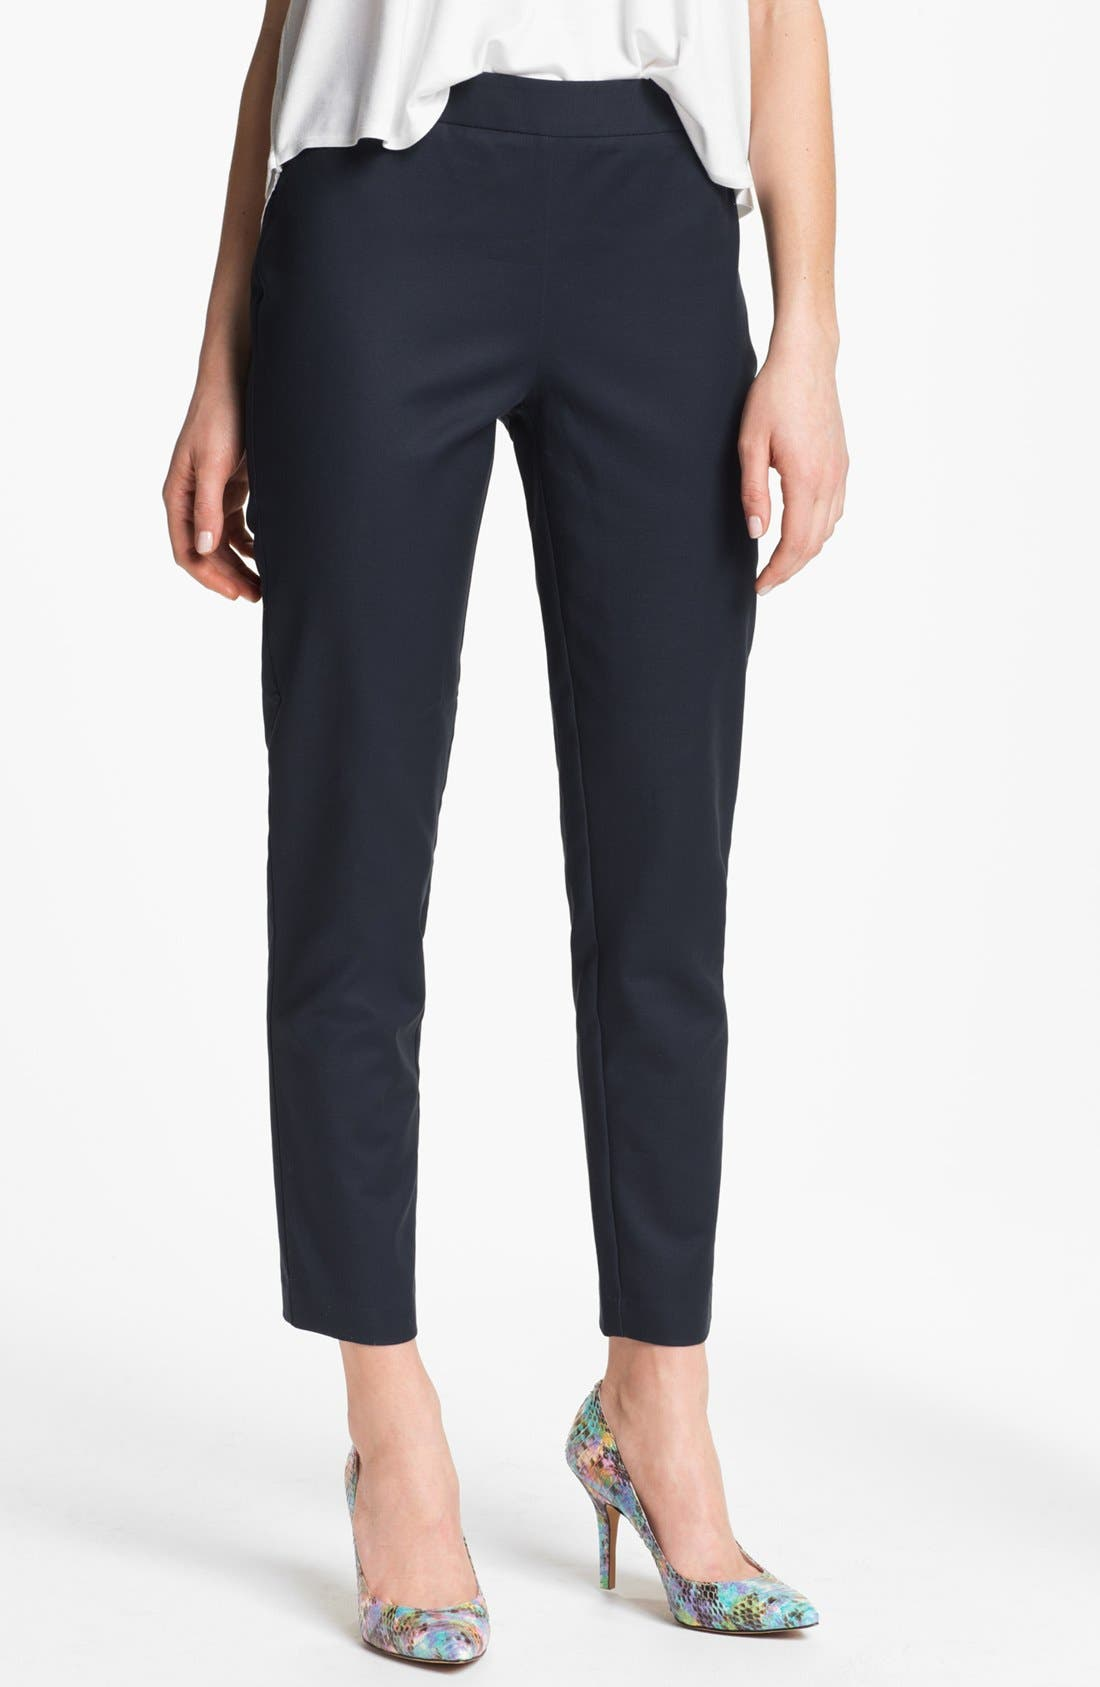 Main Image - Kenneth Cole New York 'Khloee' Cigarette Pants